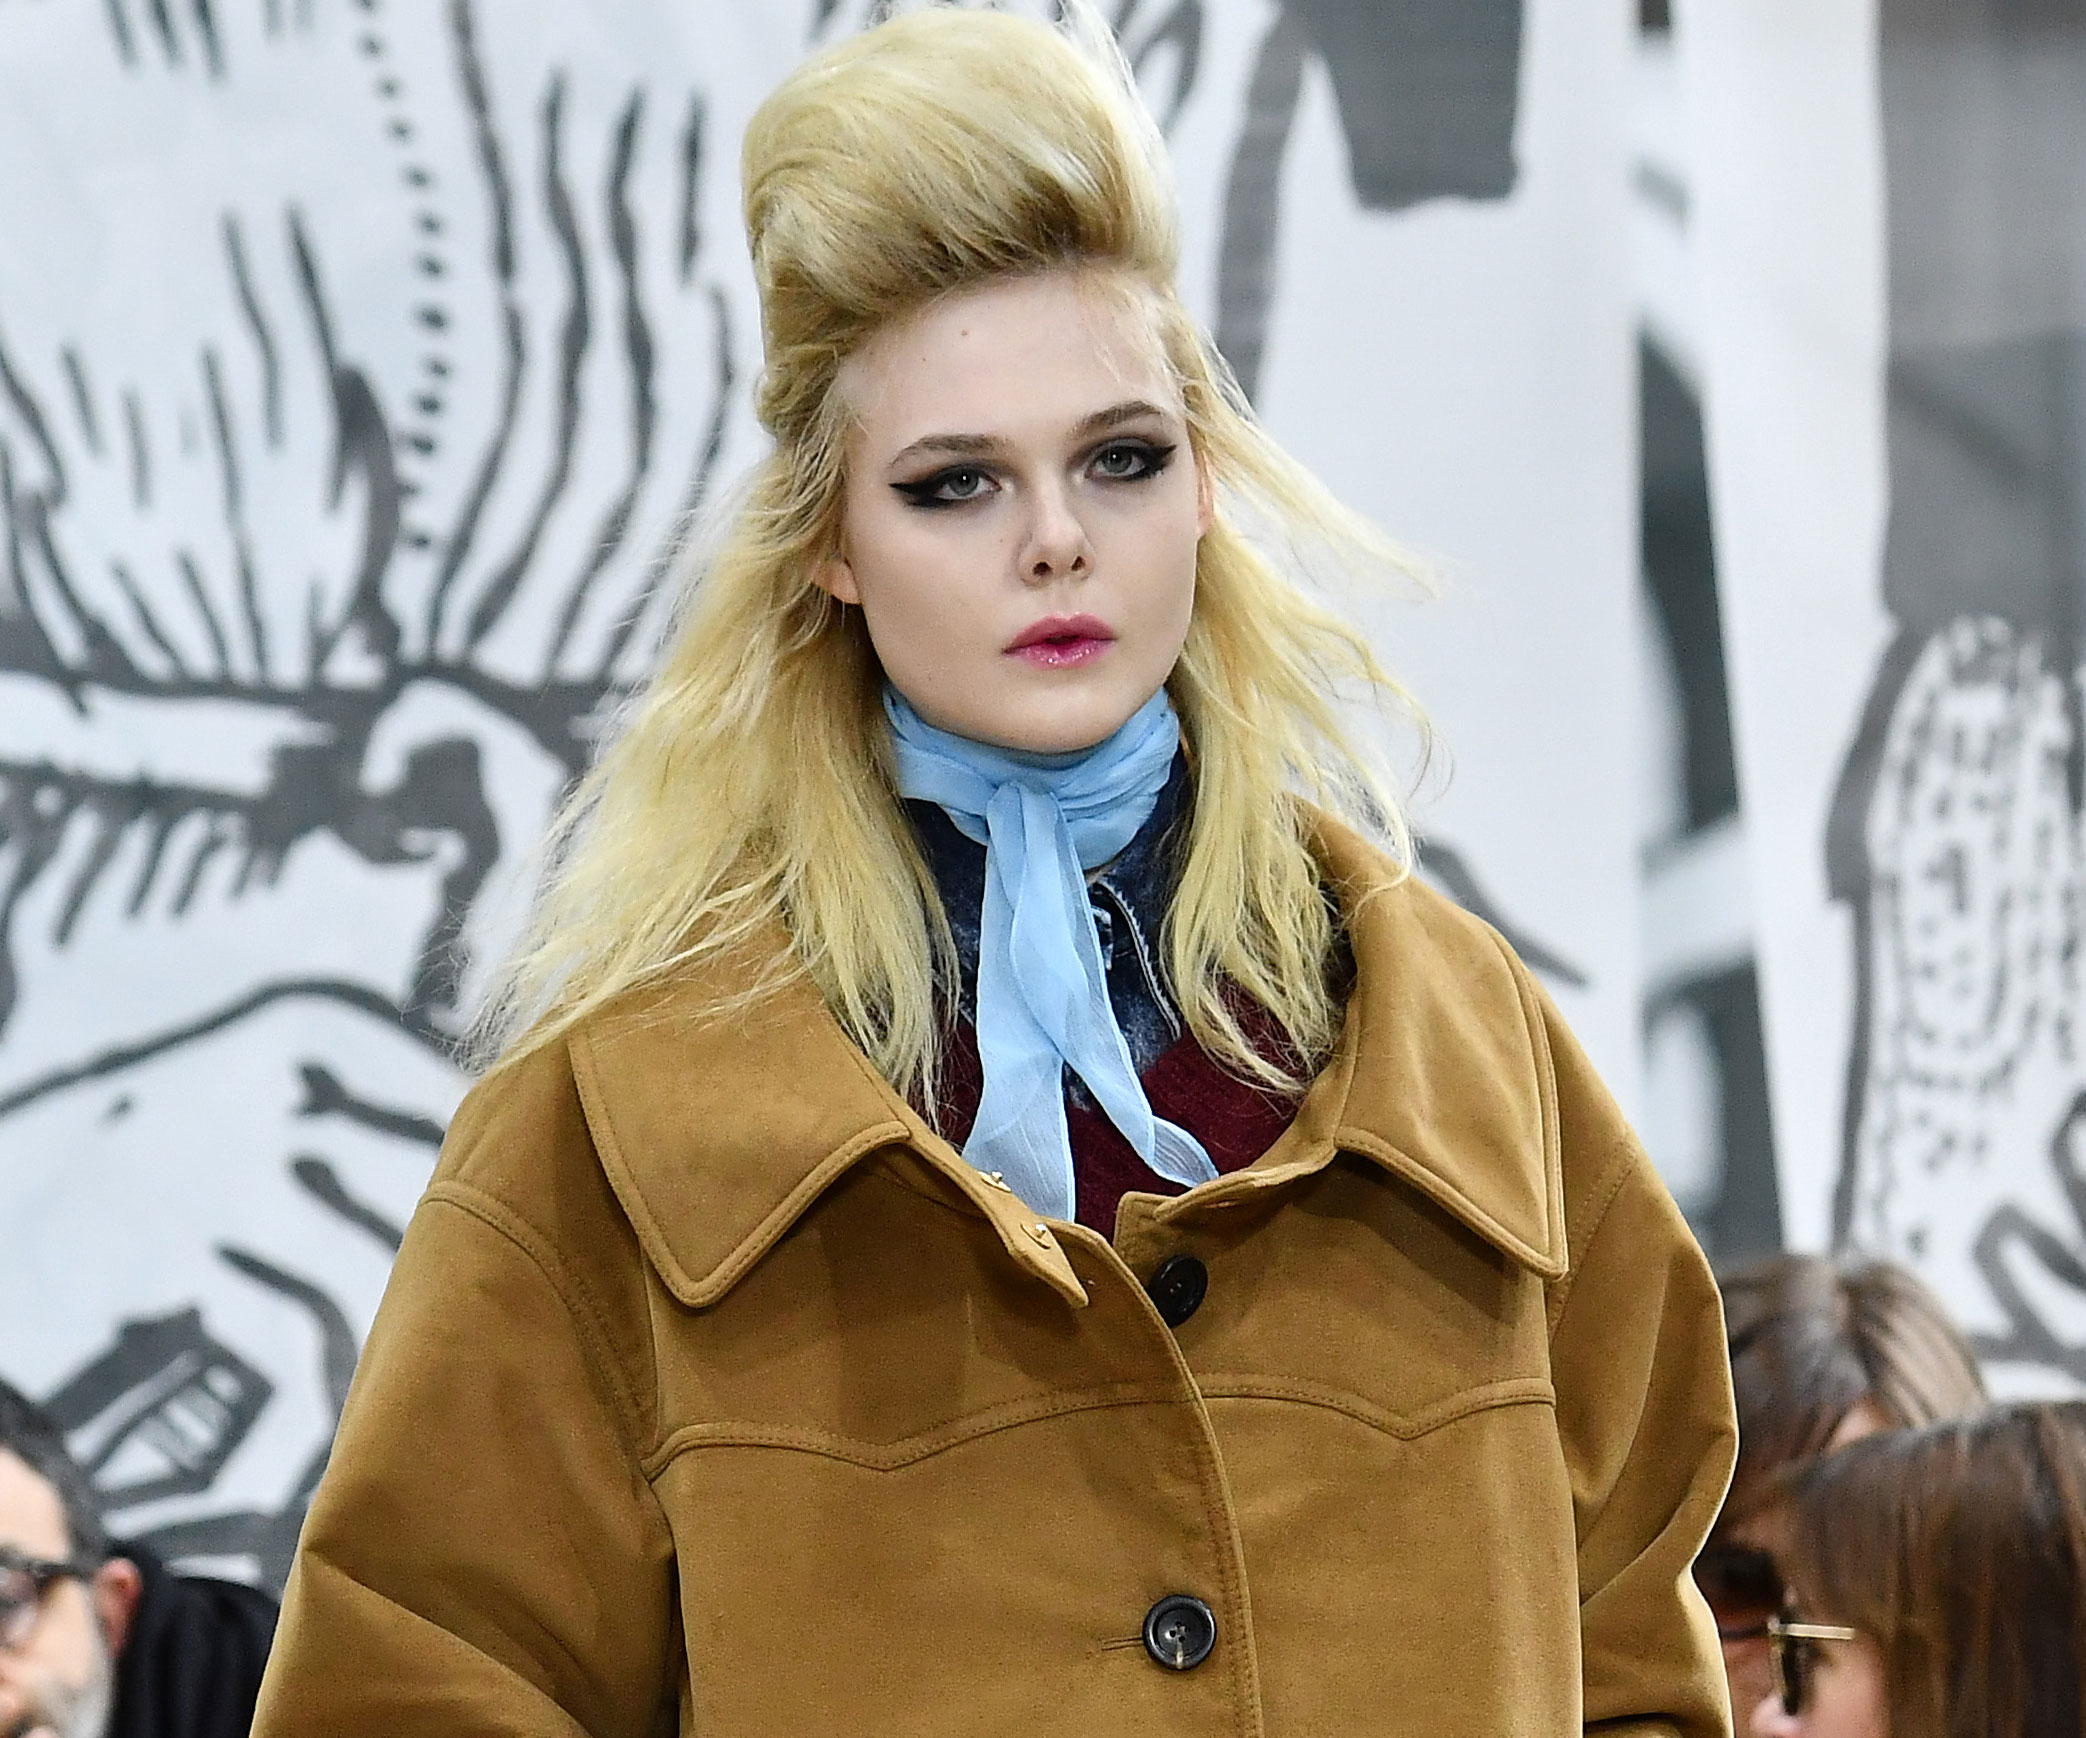 Elle Fanning made her runway debut at Miu Miu's autumn/winter show